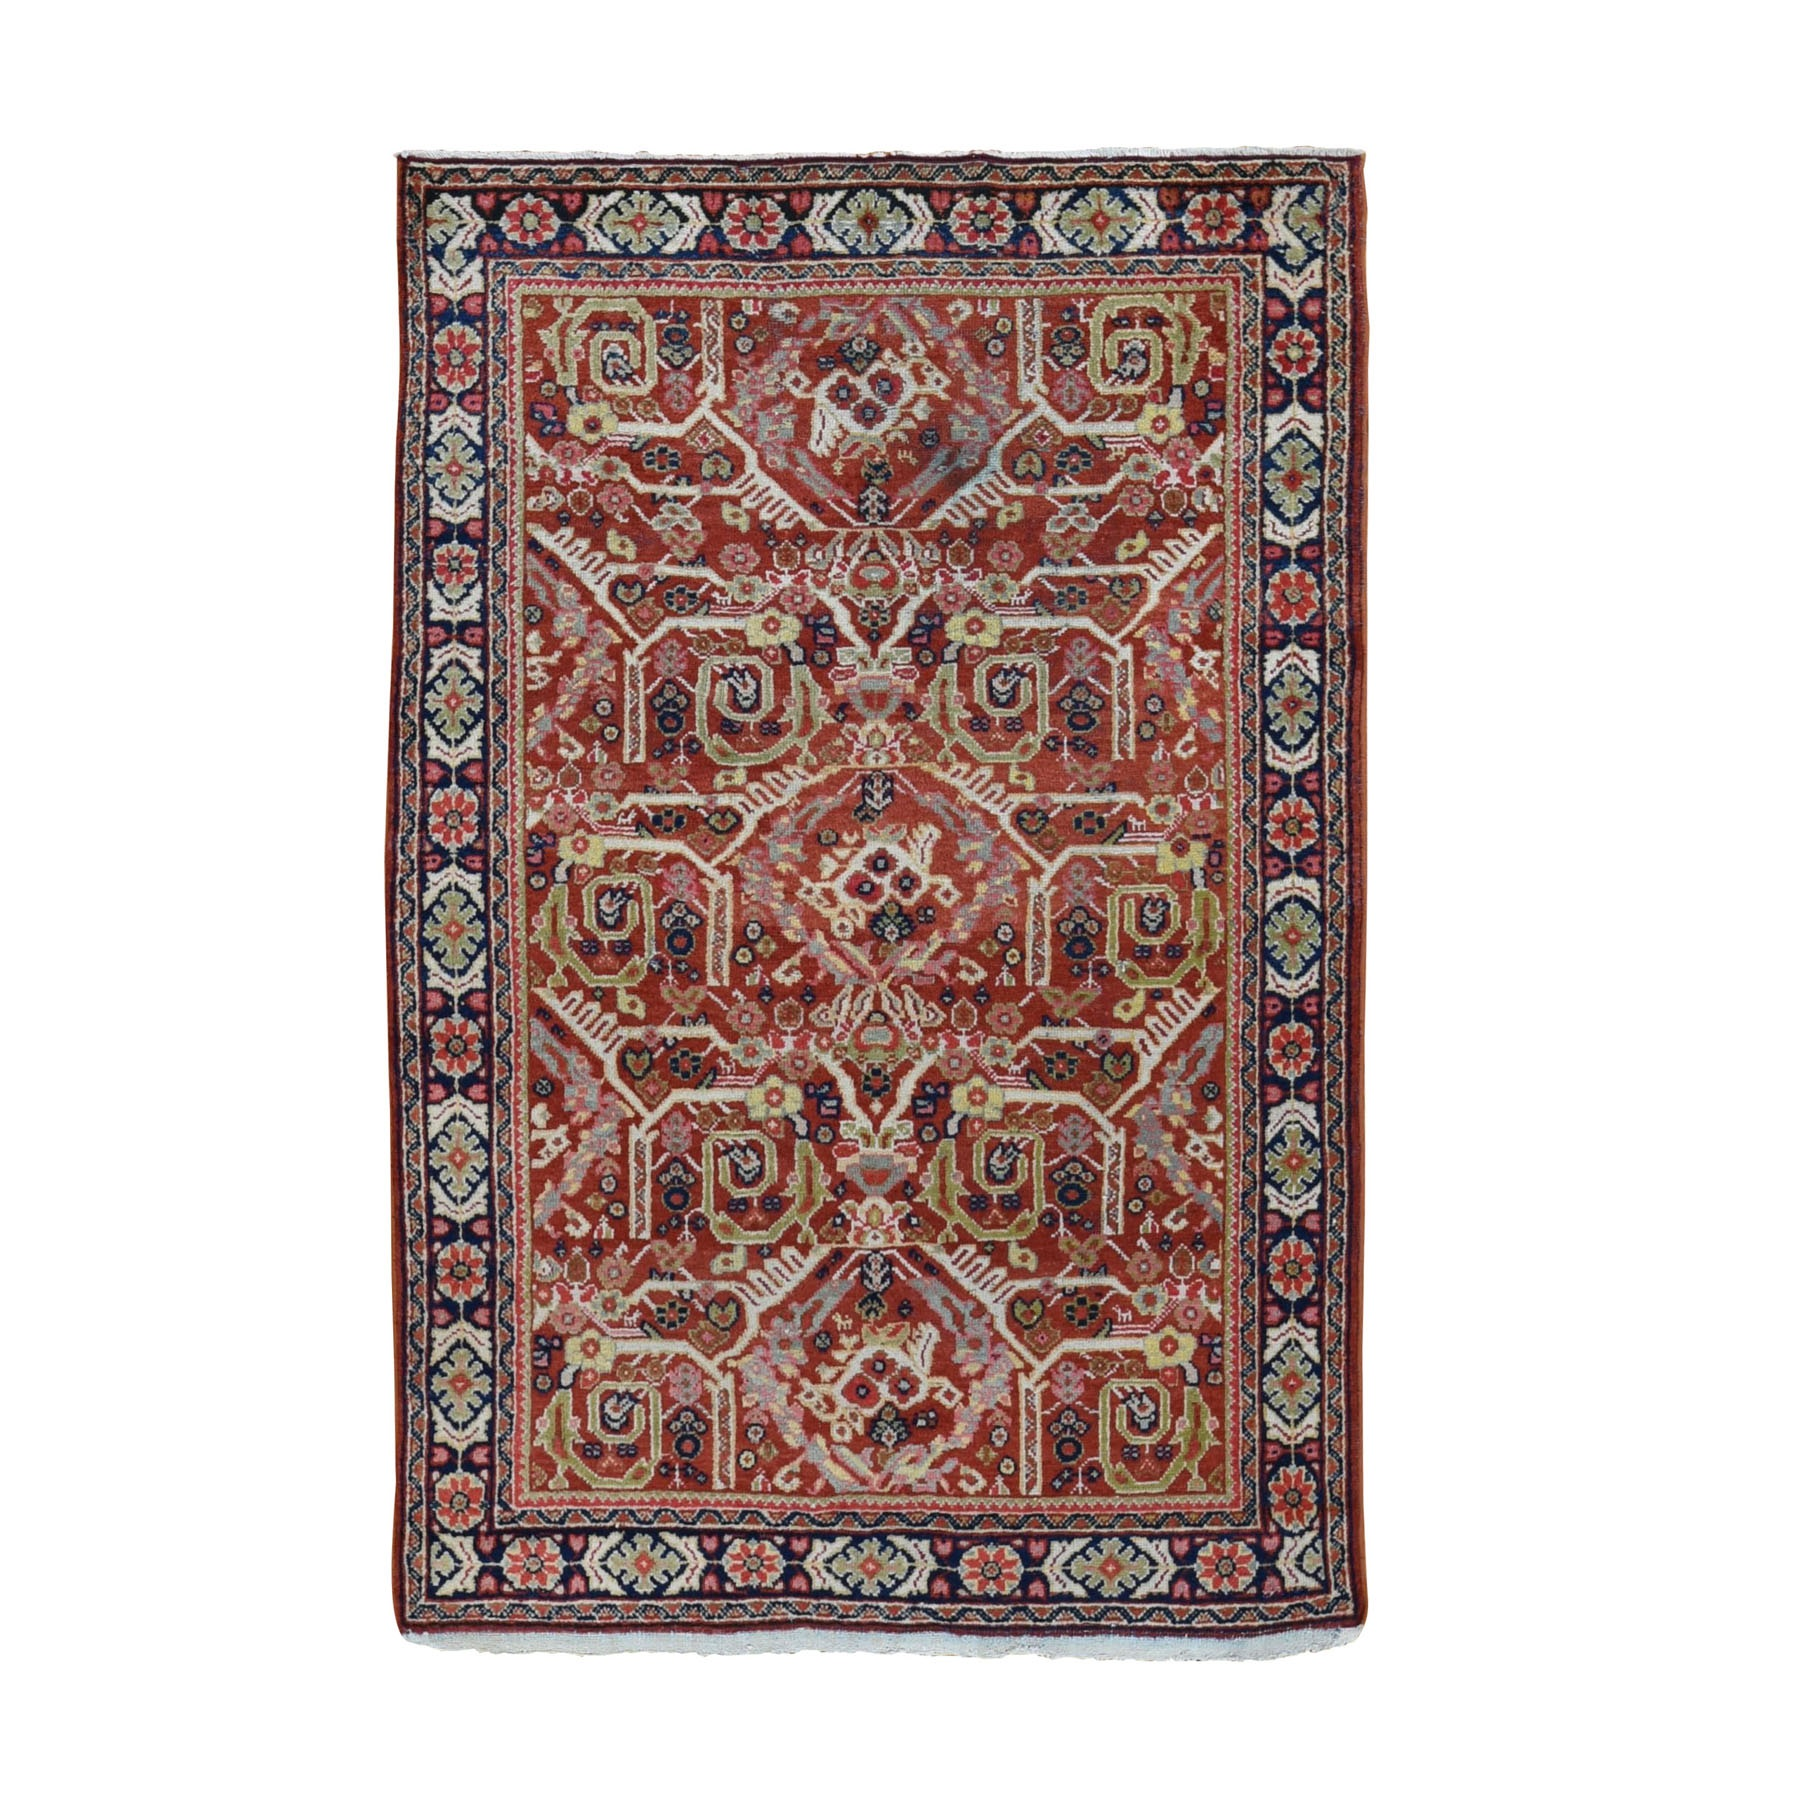 Antique Collection Hand Knotted Red Rug No: 0198108